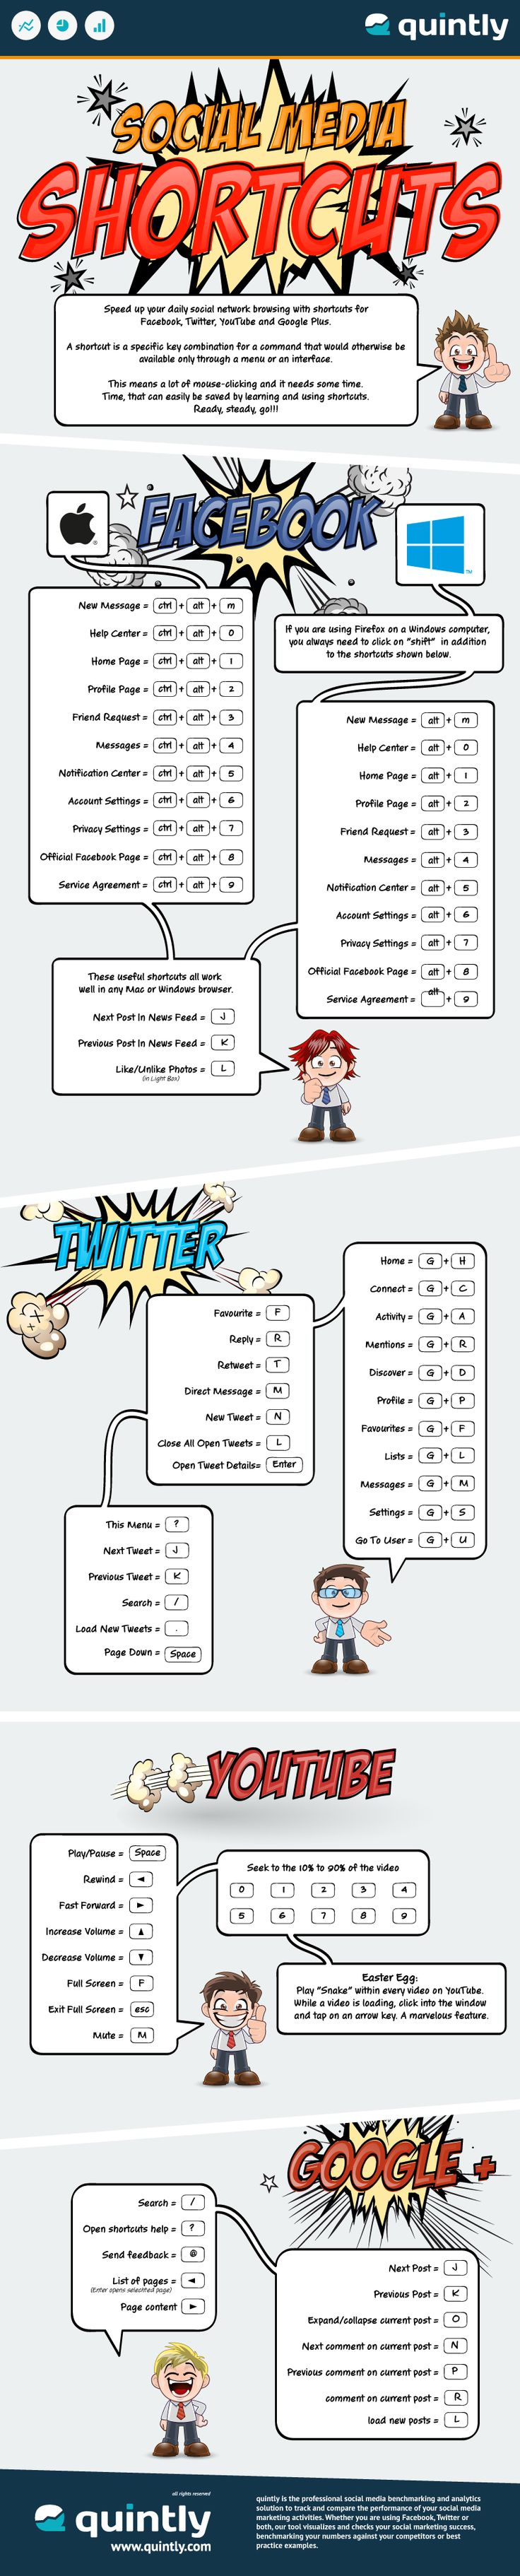 Social Media Shortcuts: Facebook und Co. per Tastatur bedienen [Infografik]